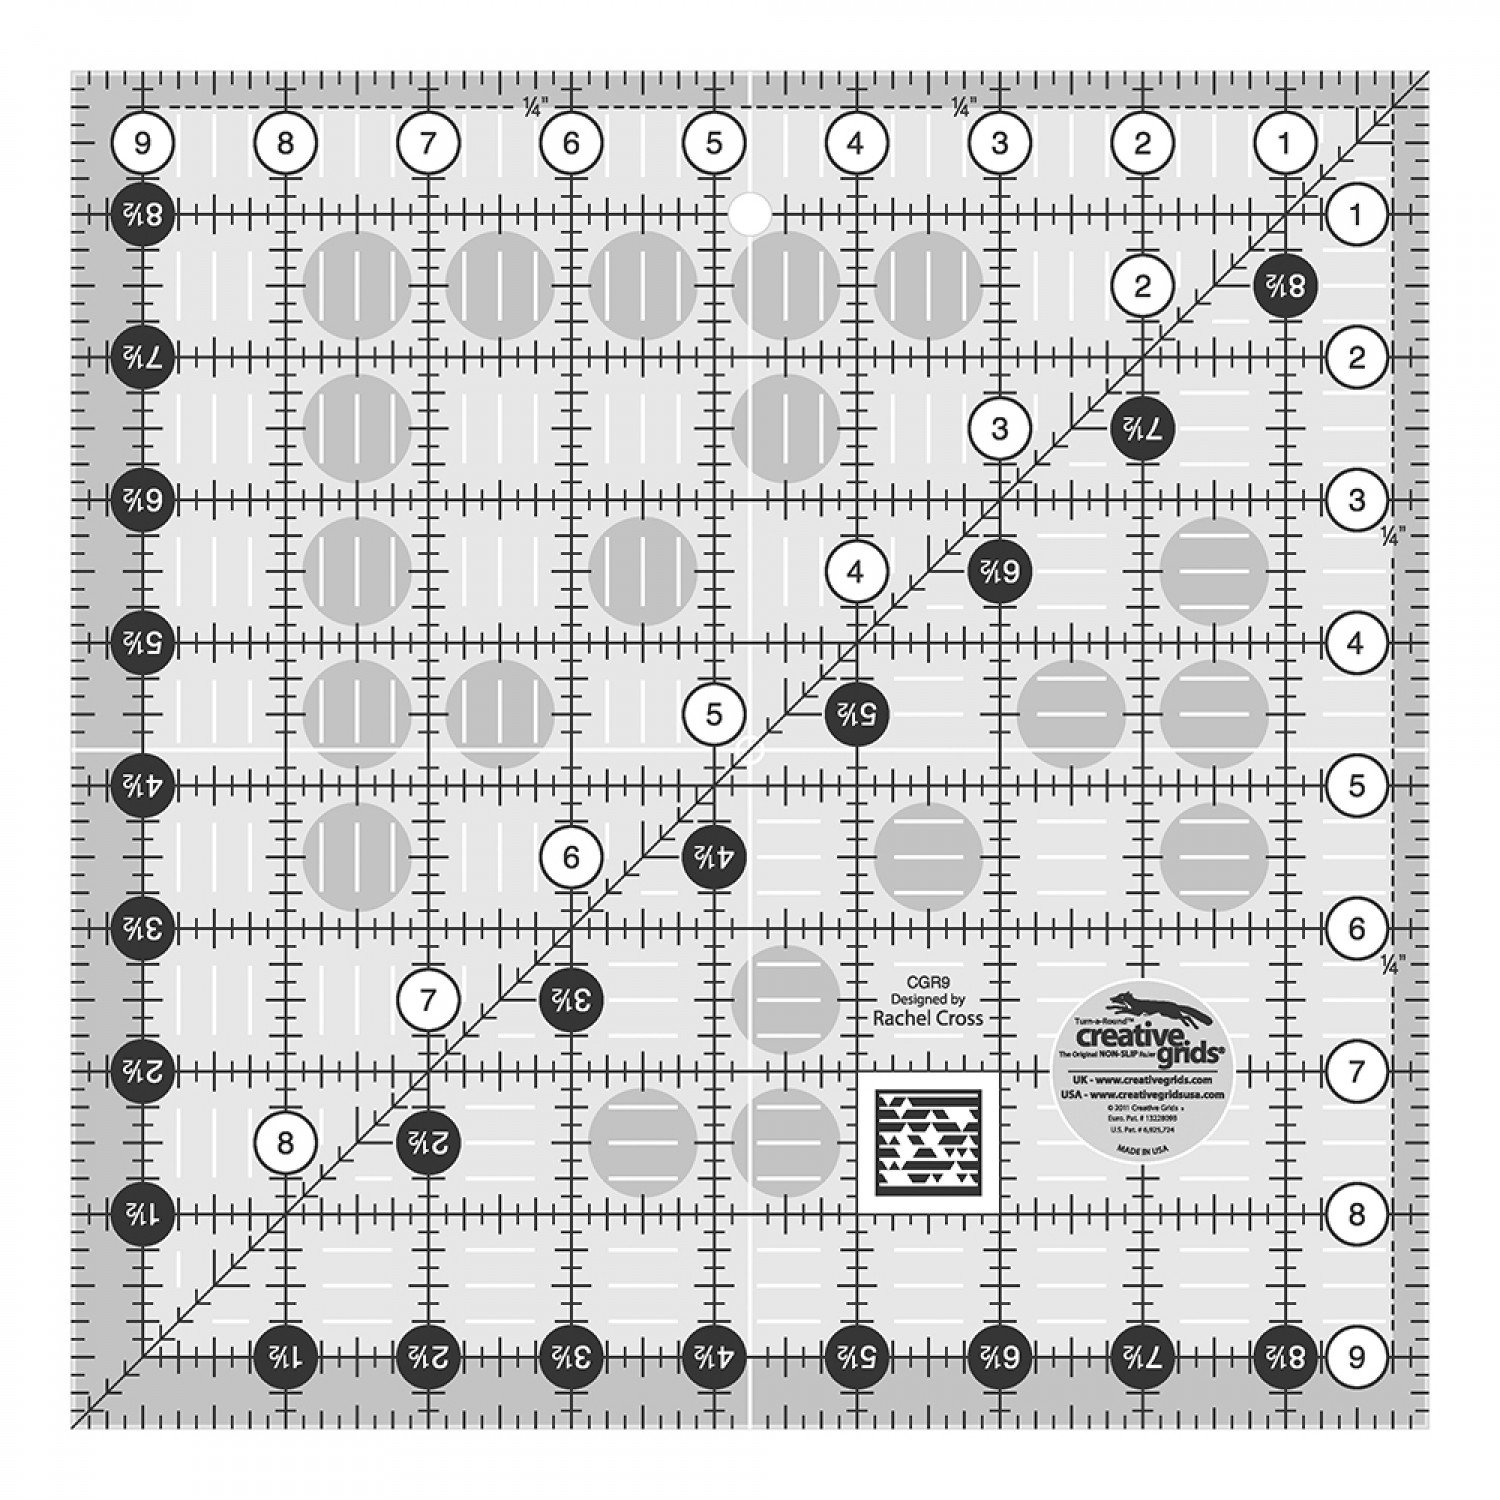 Creative Grids 9.5 Square Quilt Ruler